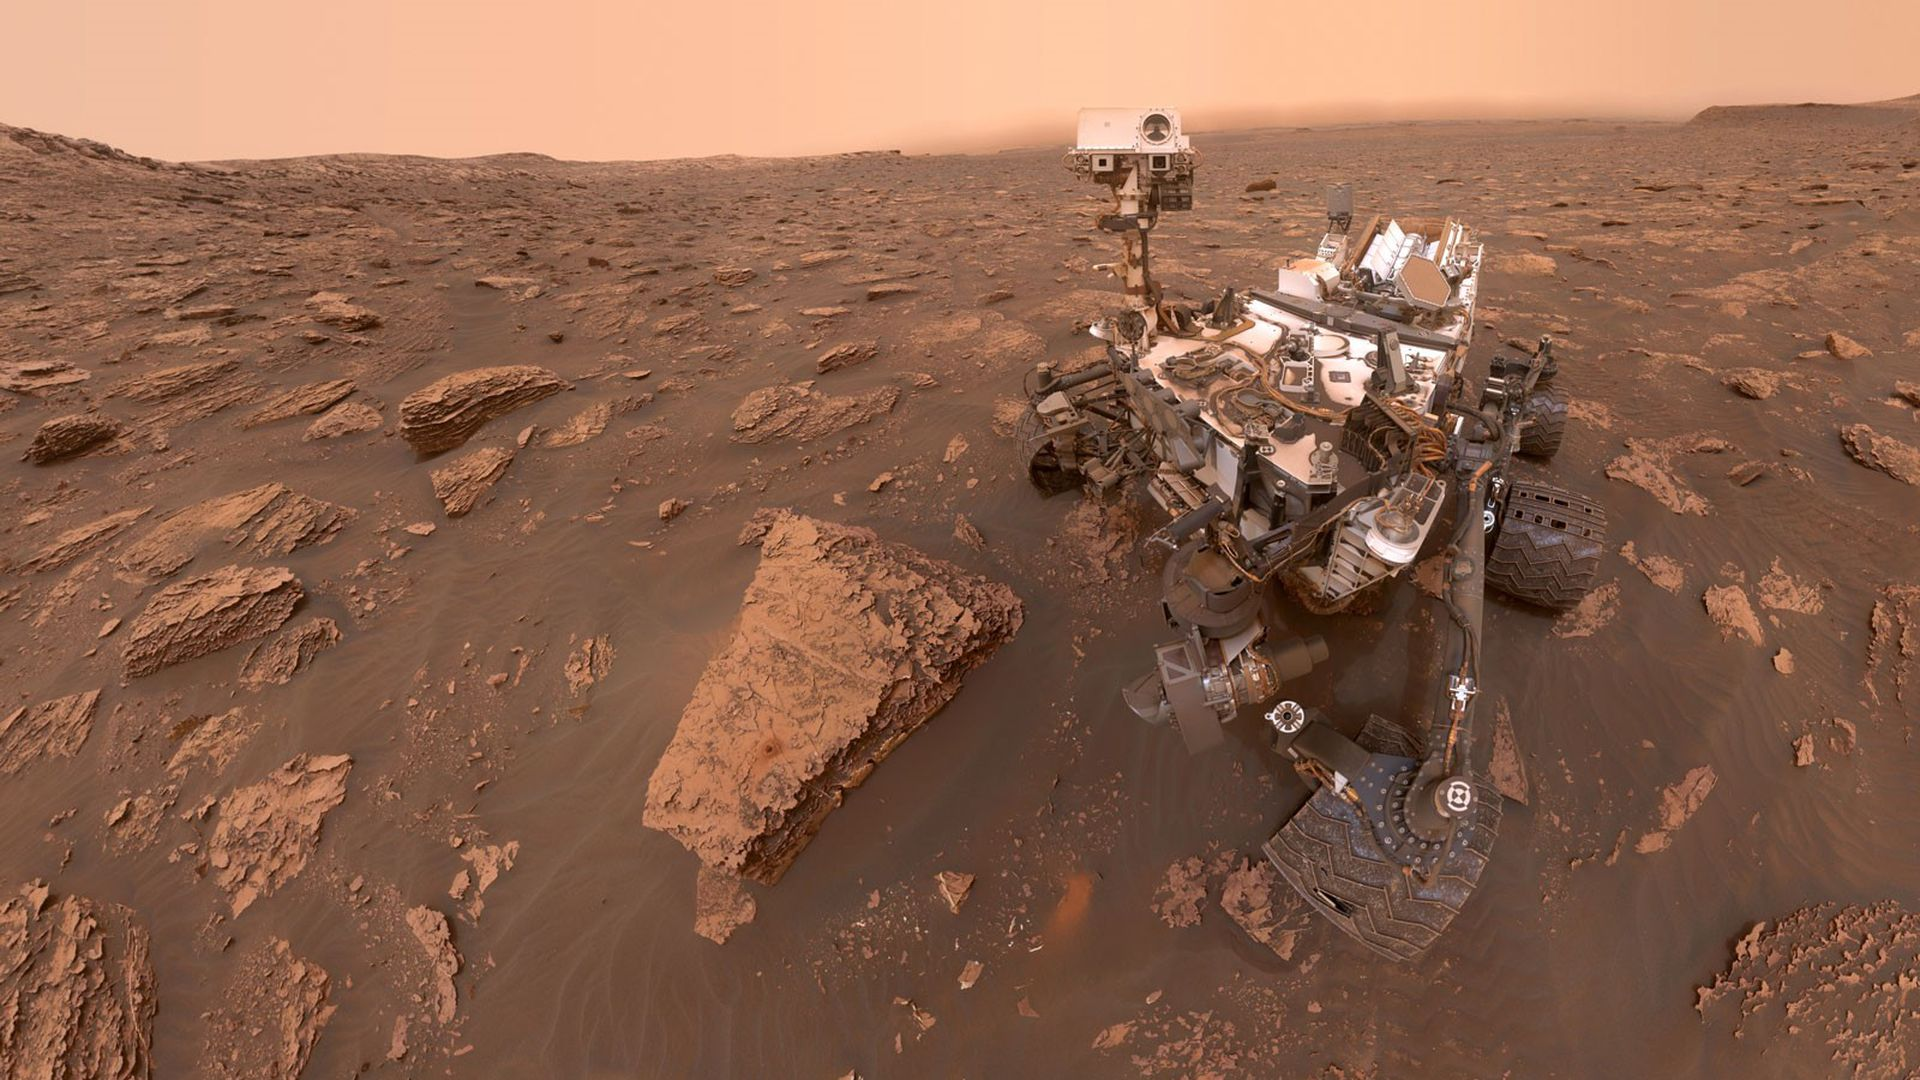 Photo of the Curiosity rover on Mars